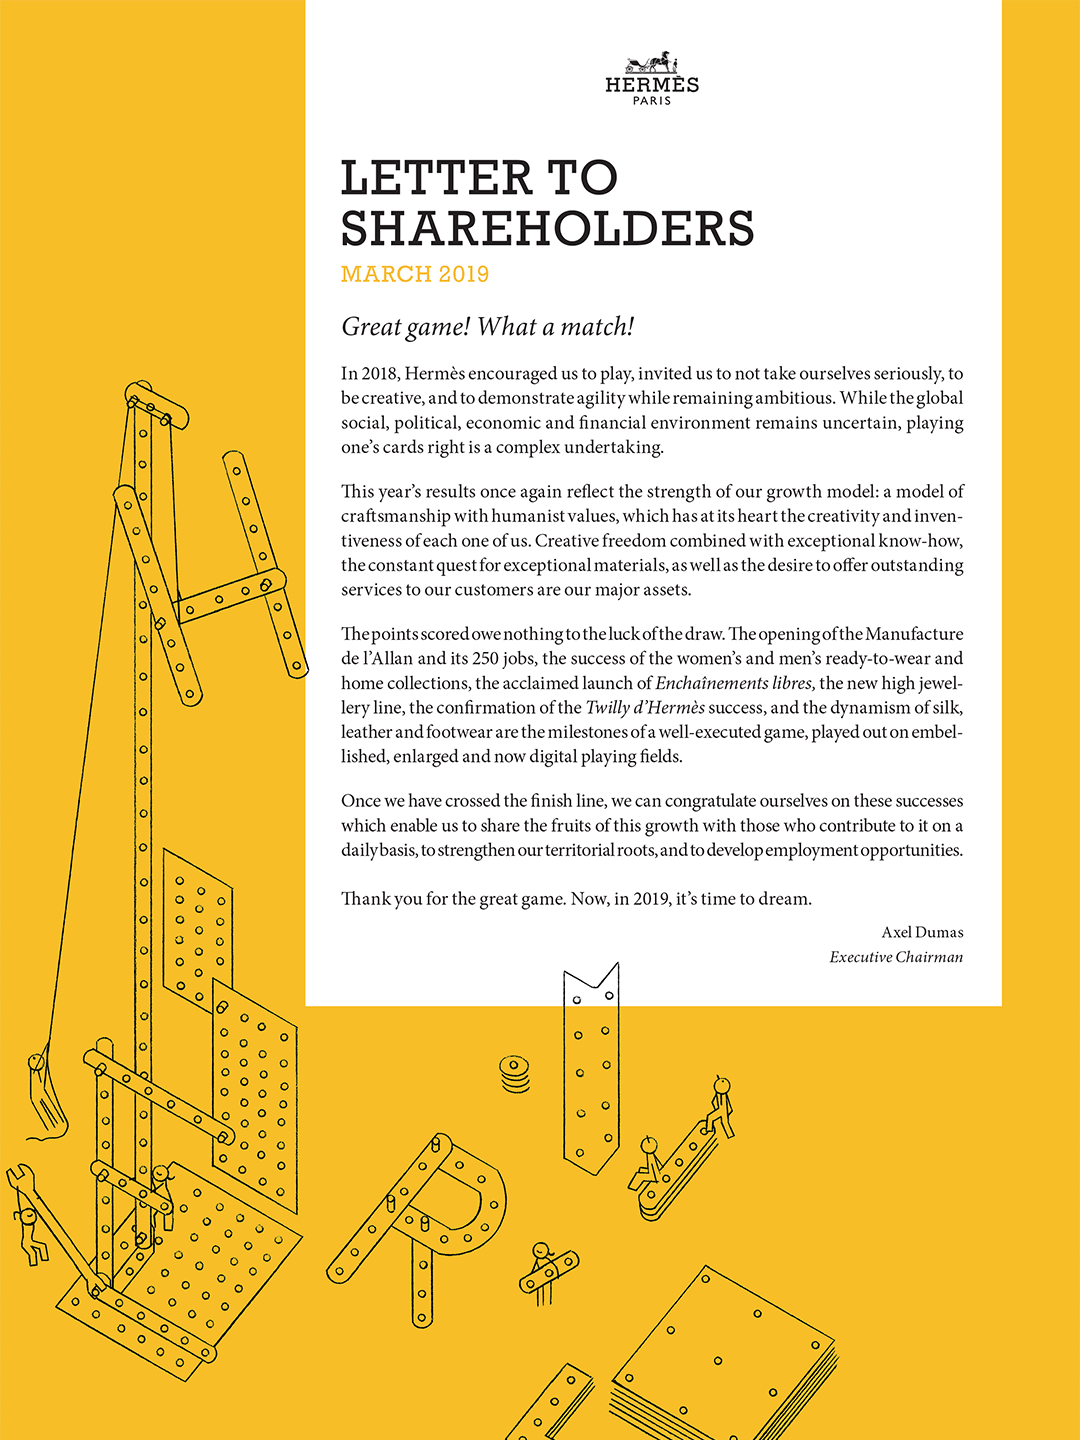 Cover - Lettre to shareholders - April 2019